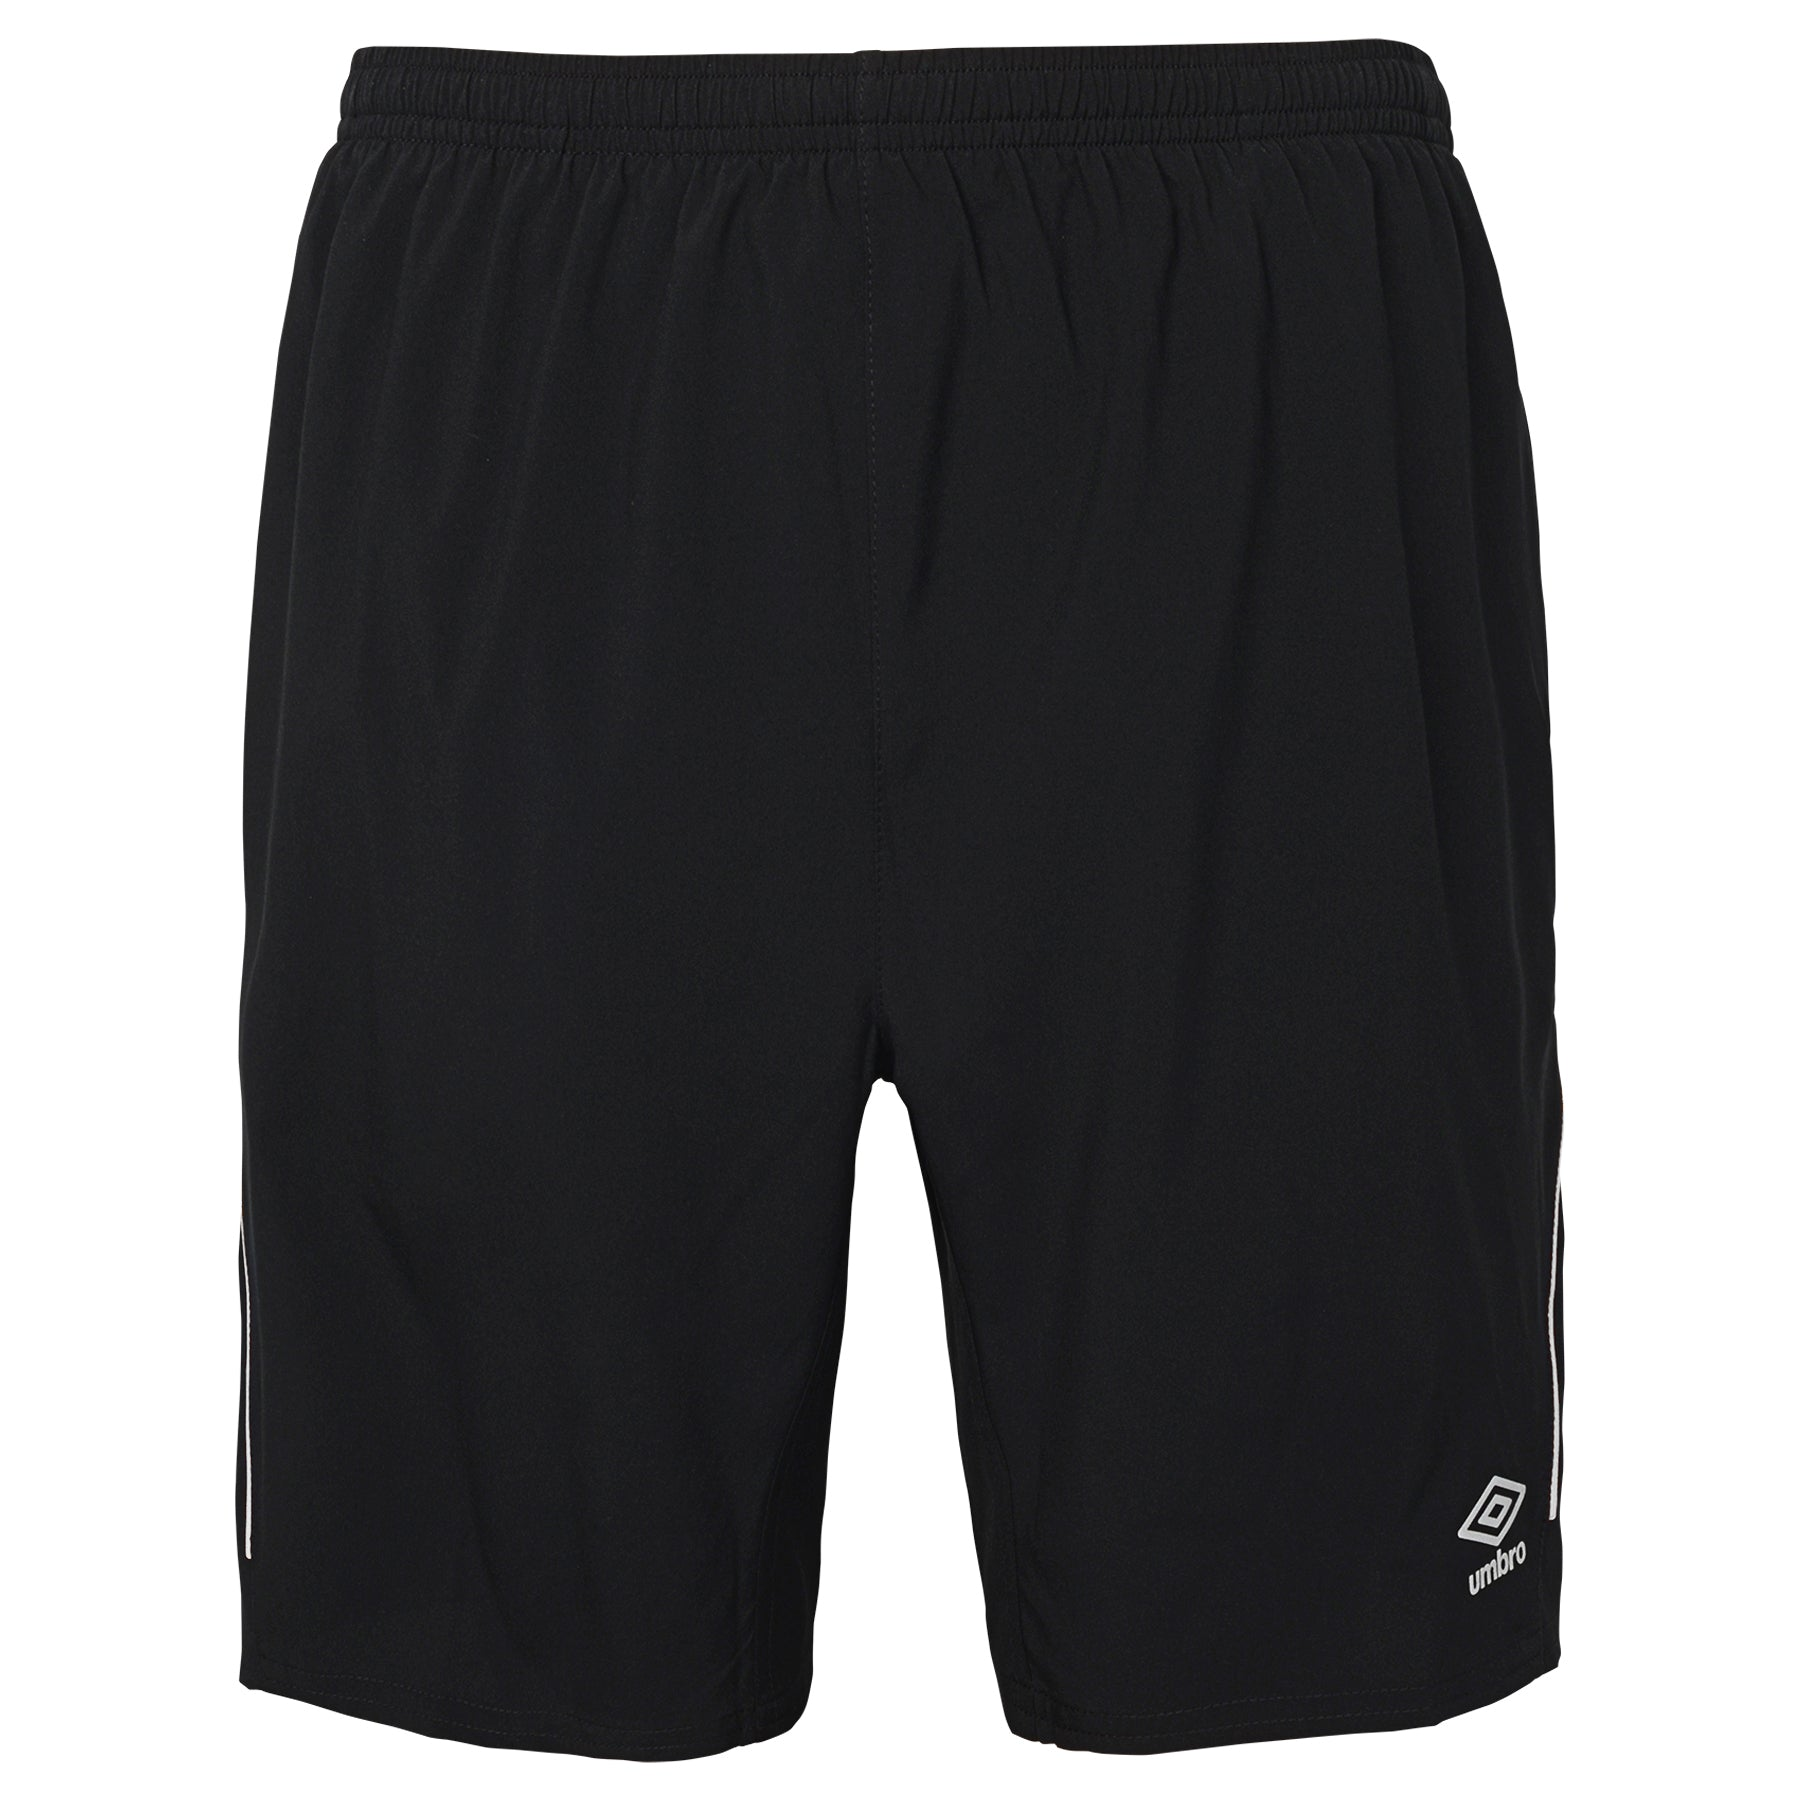 SILO TRAINING WOVEN SHORT